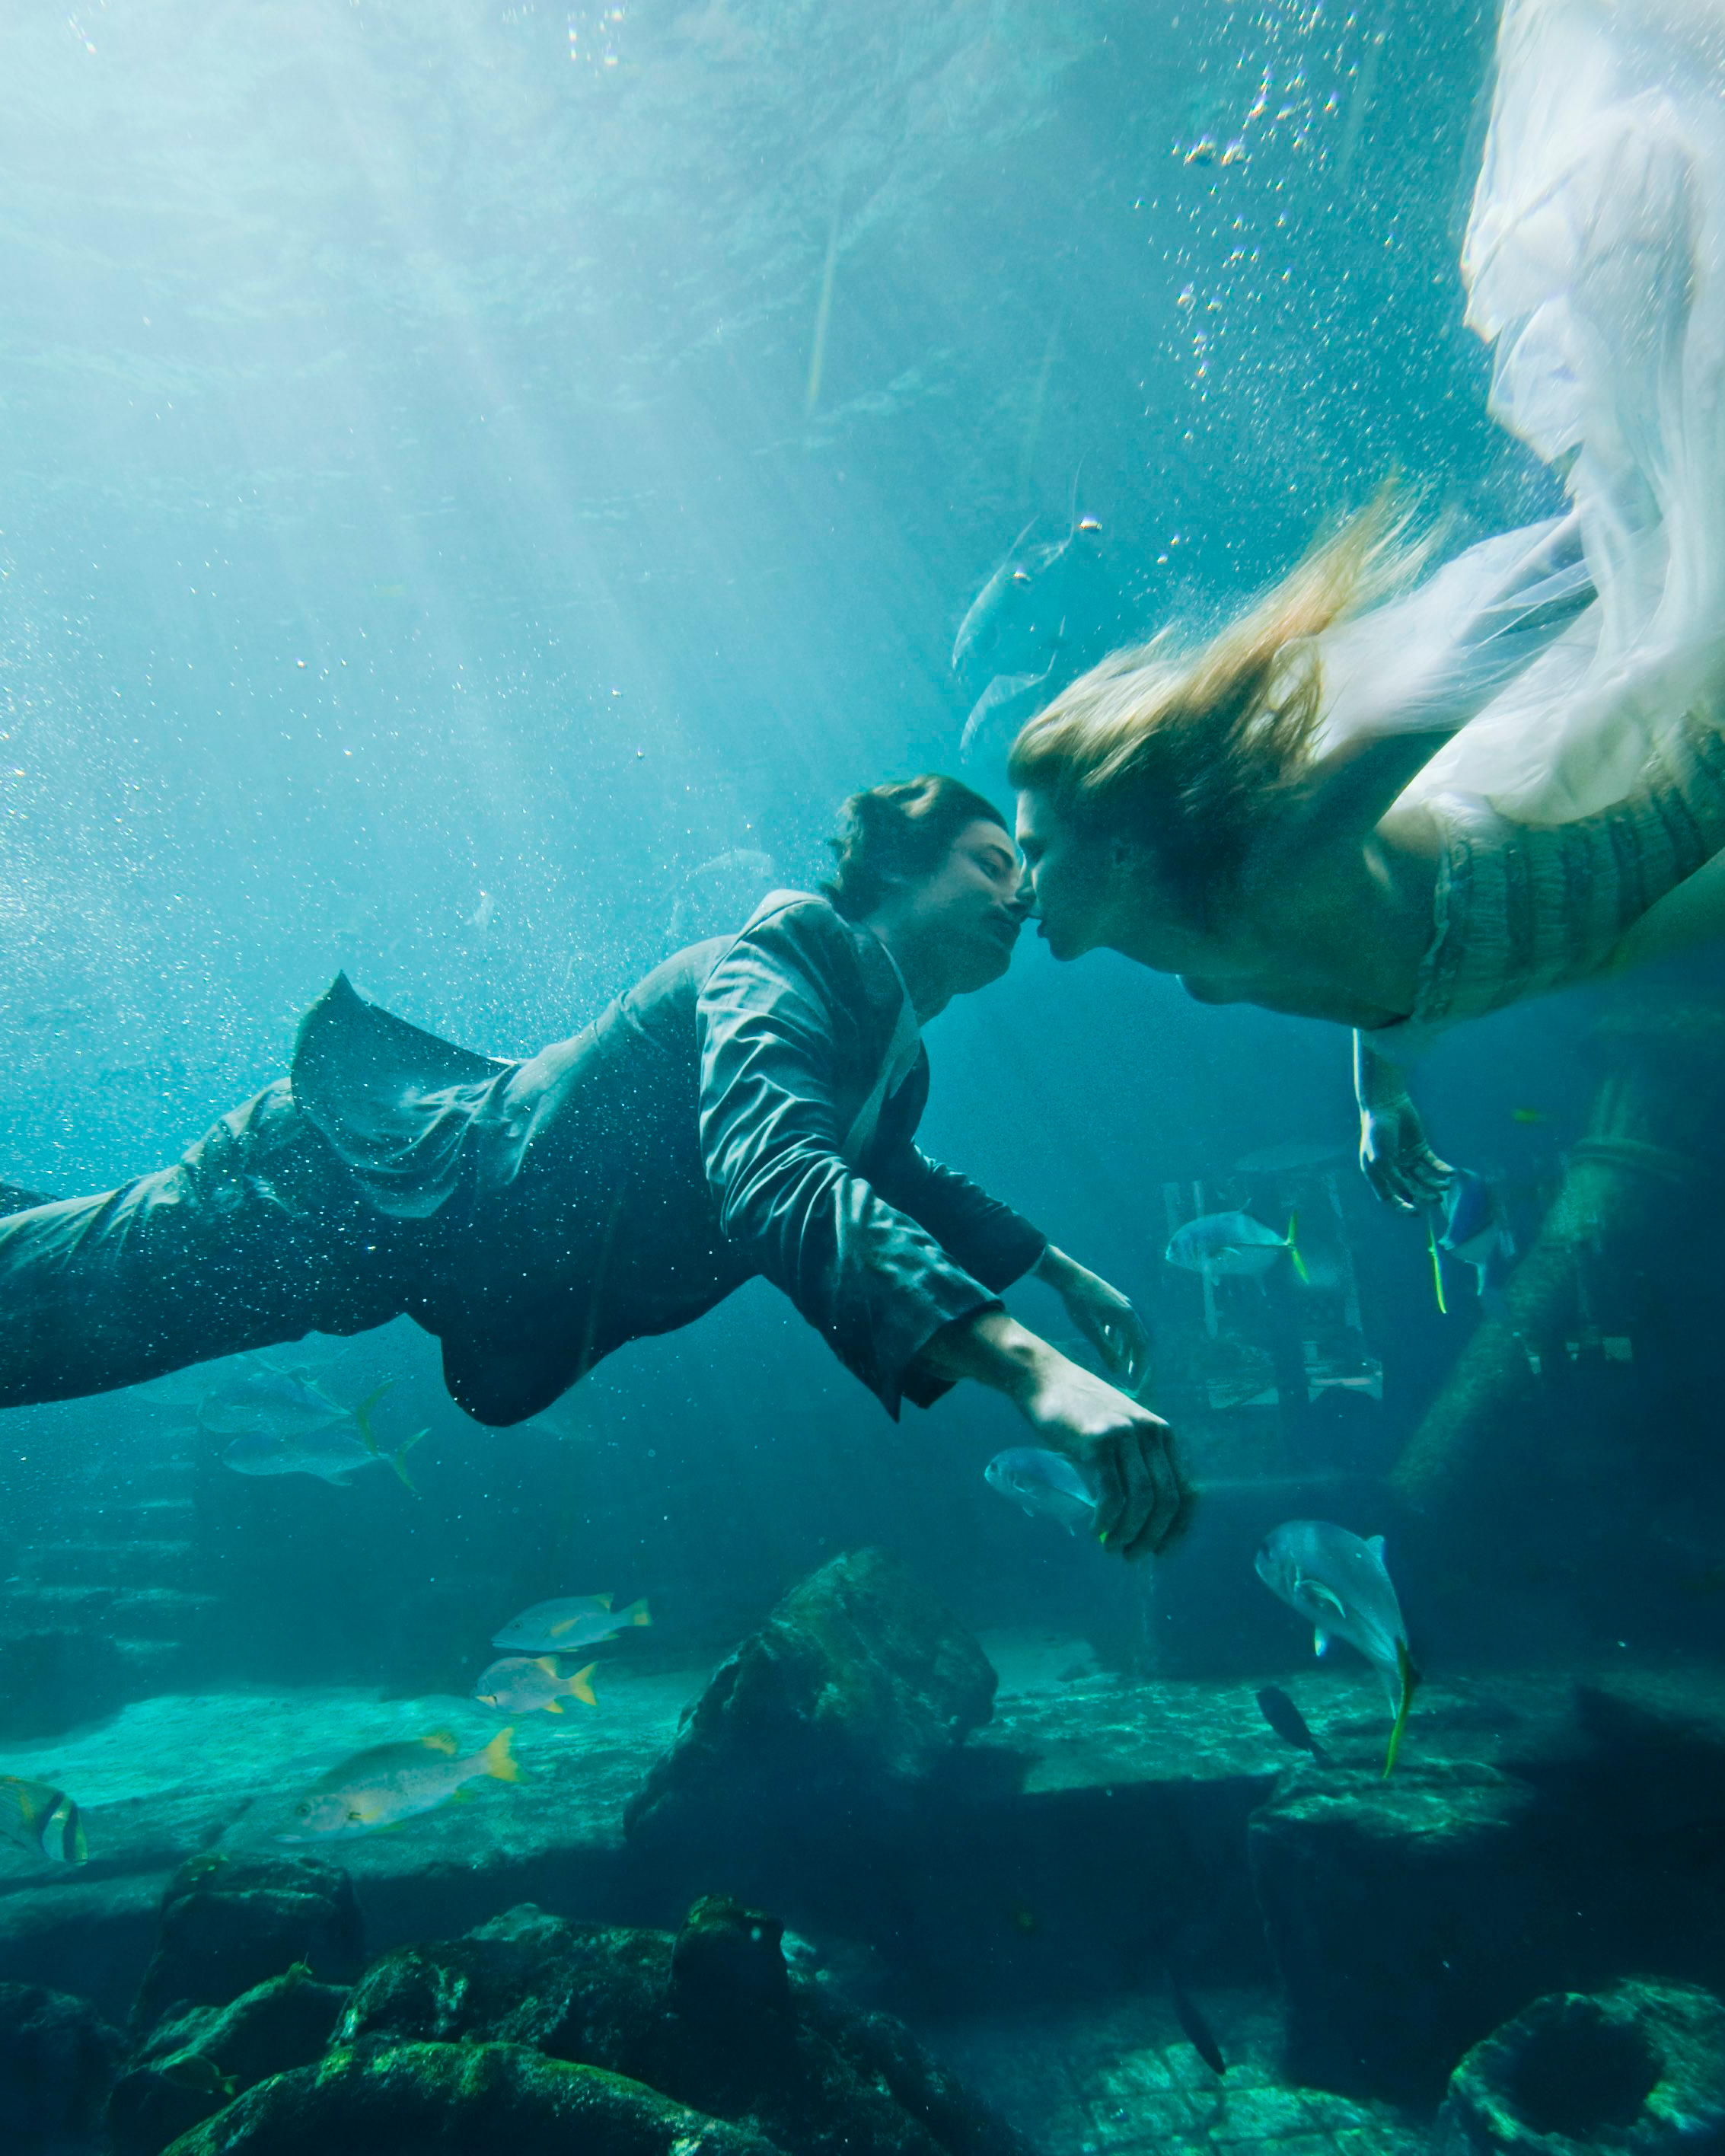 adventurous-ways-to-marry-atlantis-underwater-wedding-in-the-dig-1215.jpg